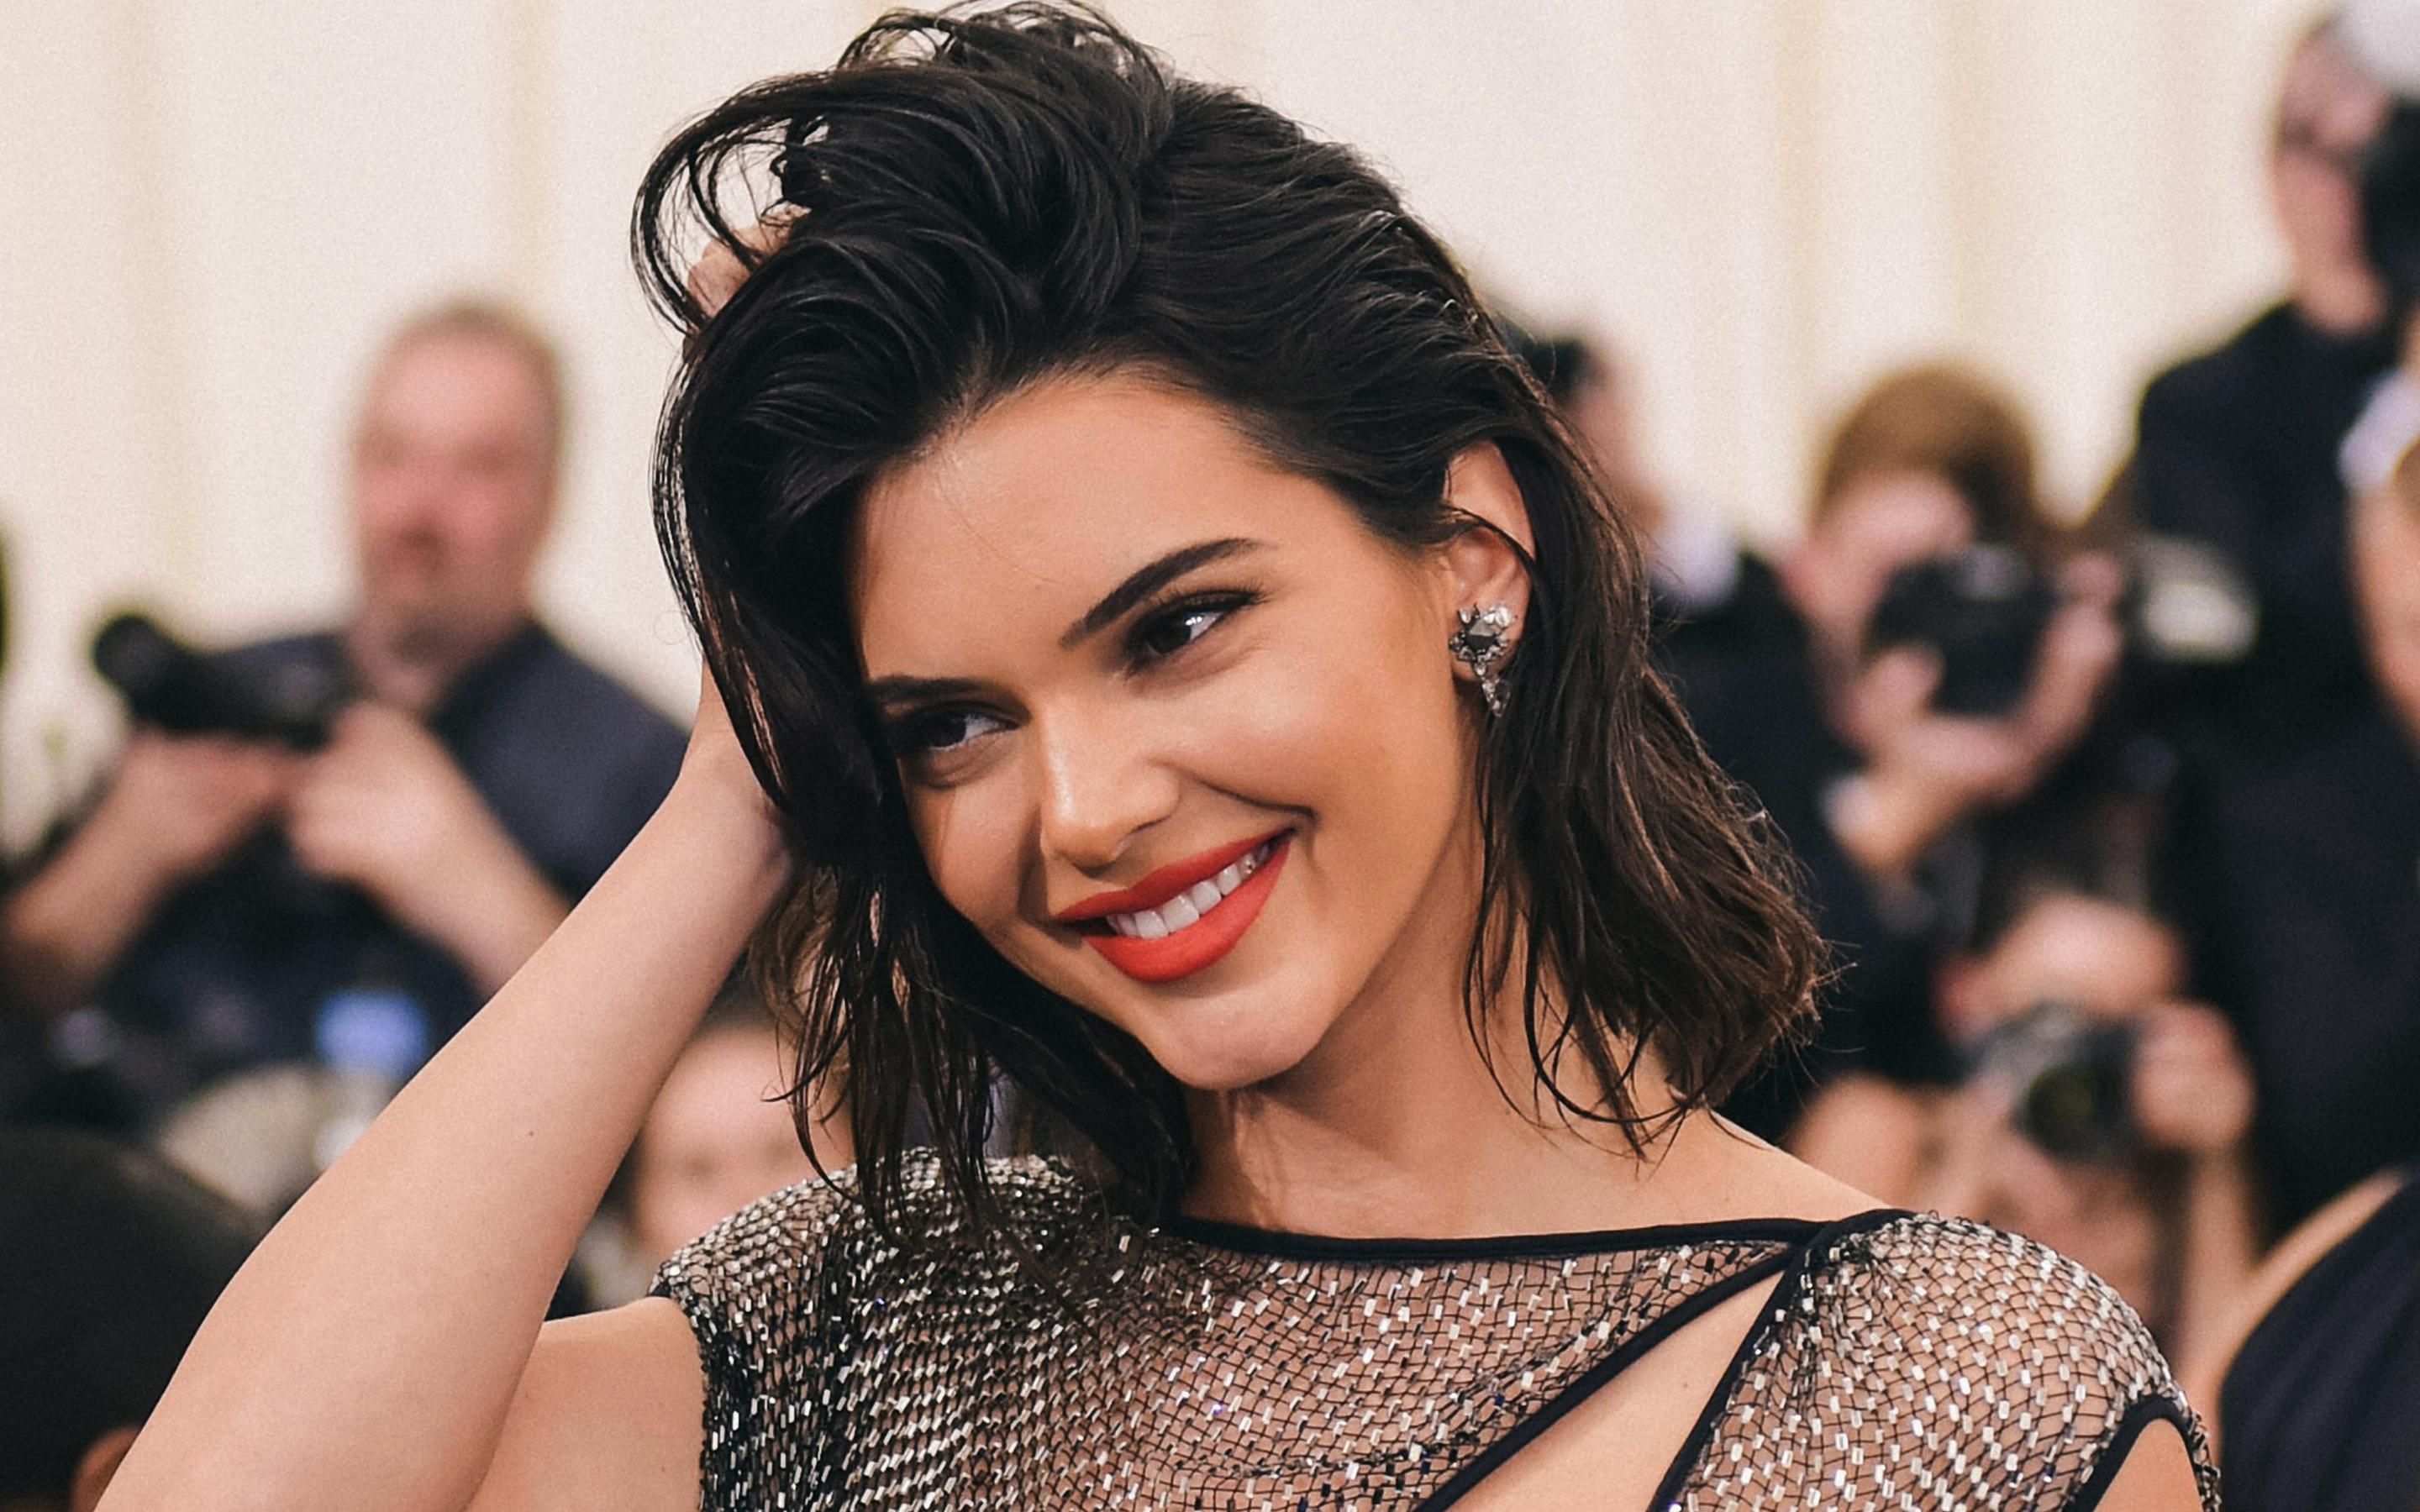 2880x1800 - Kendall Jenner Wallpapers 23